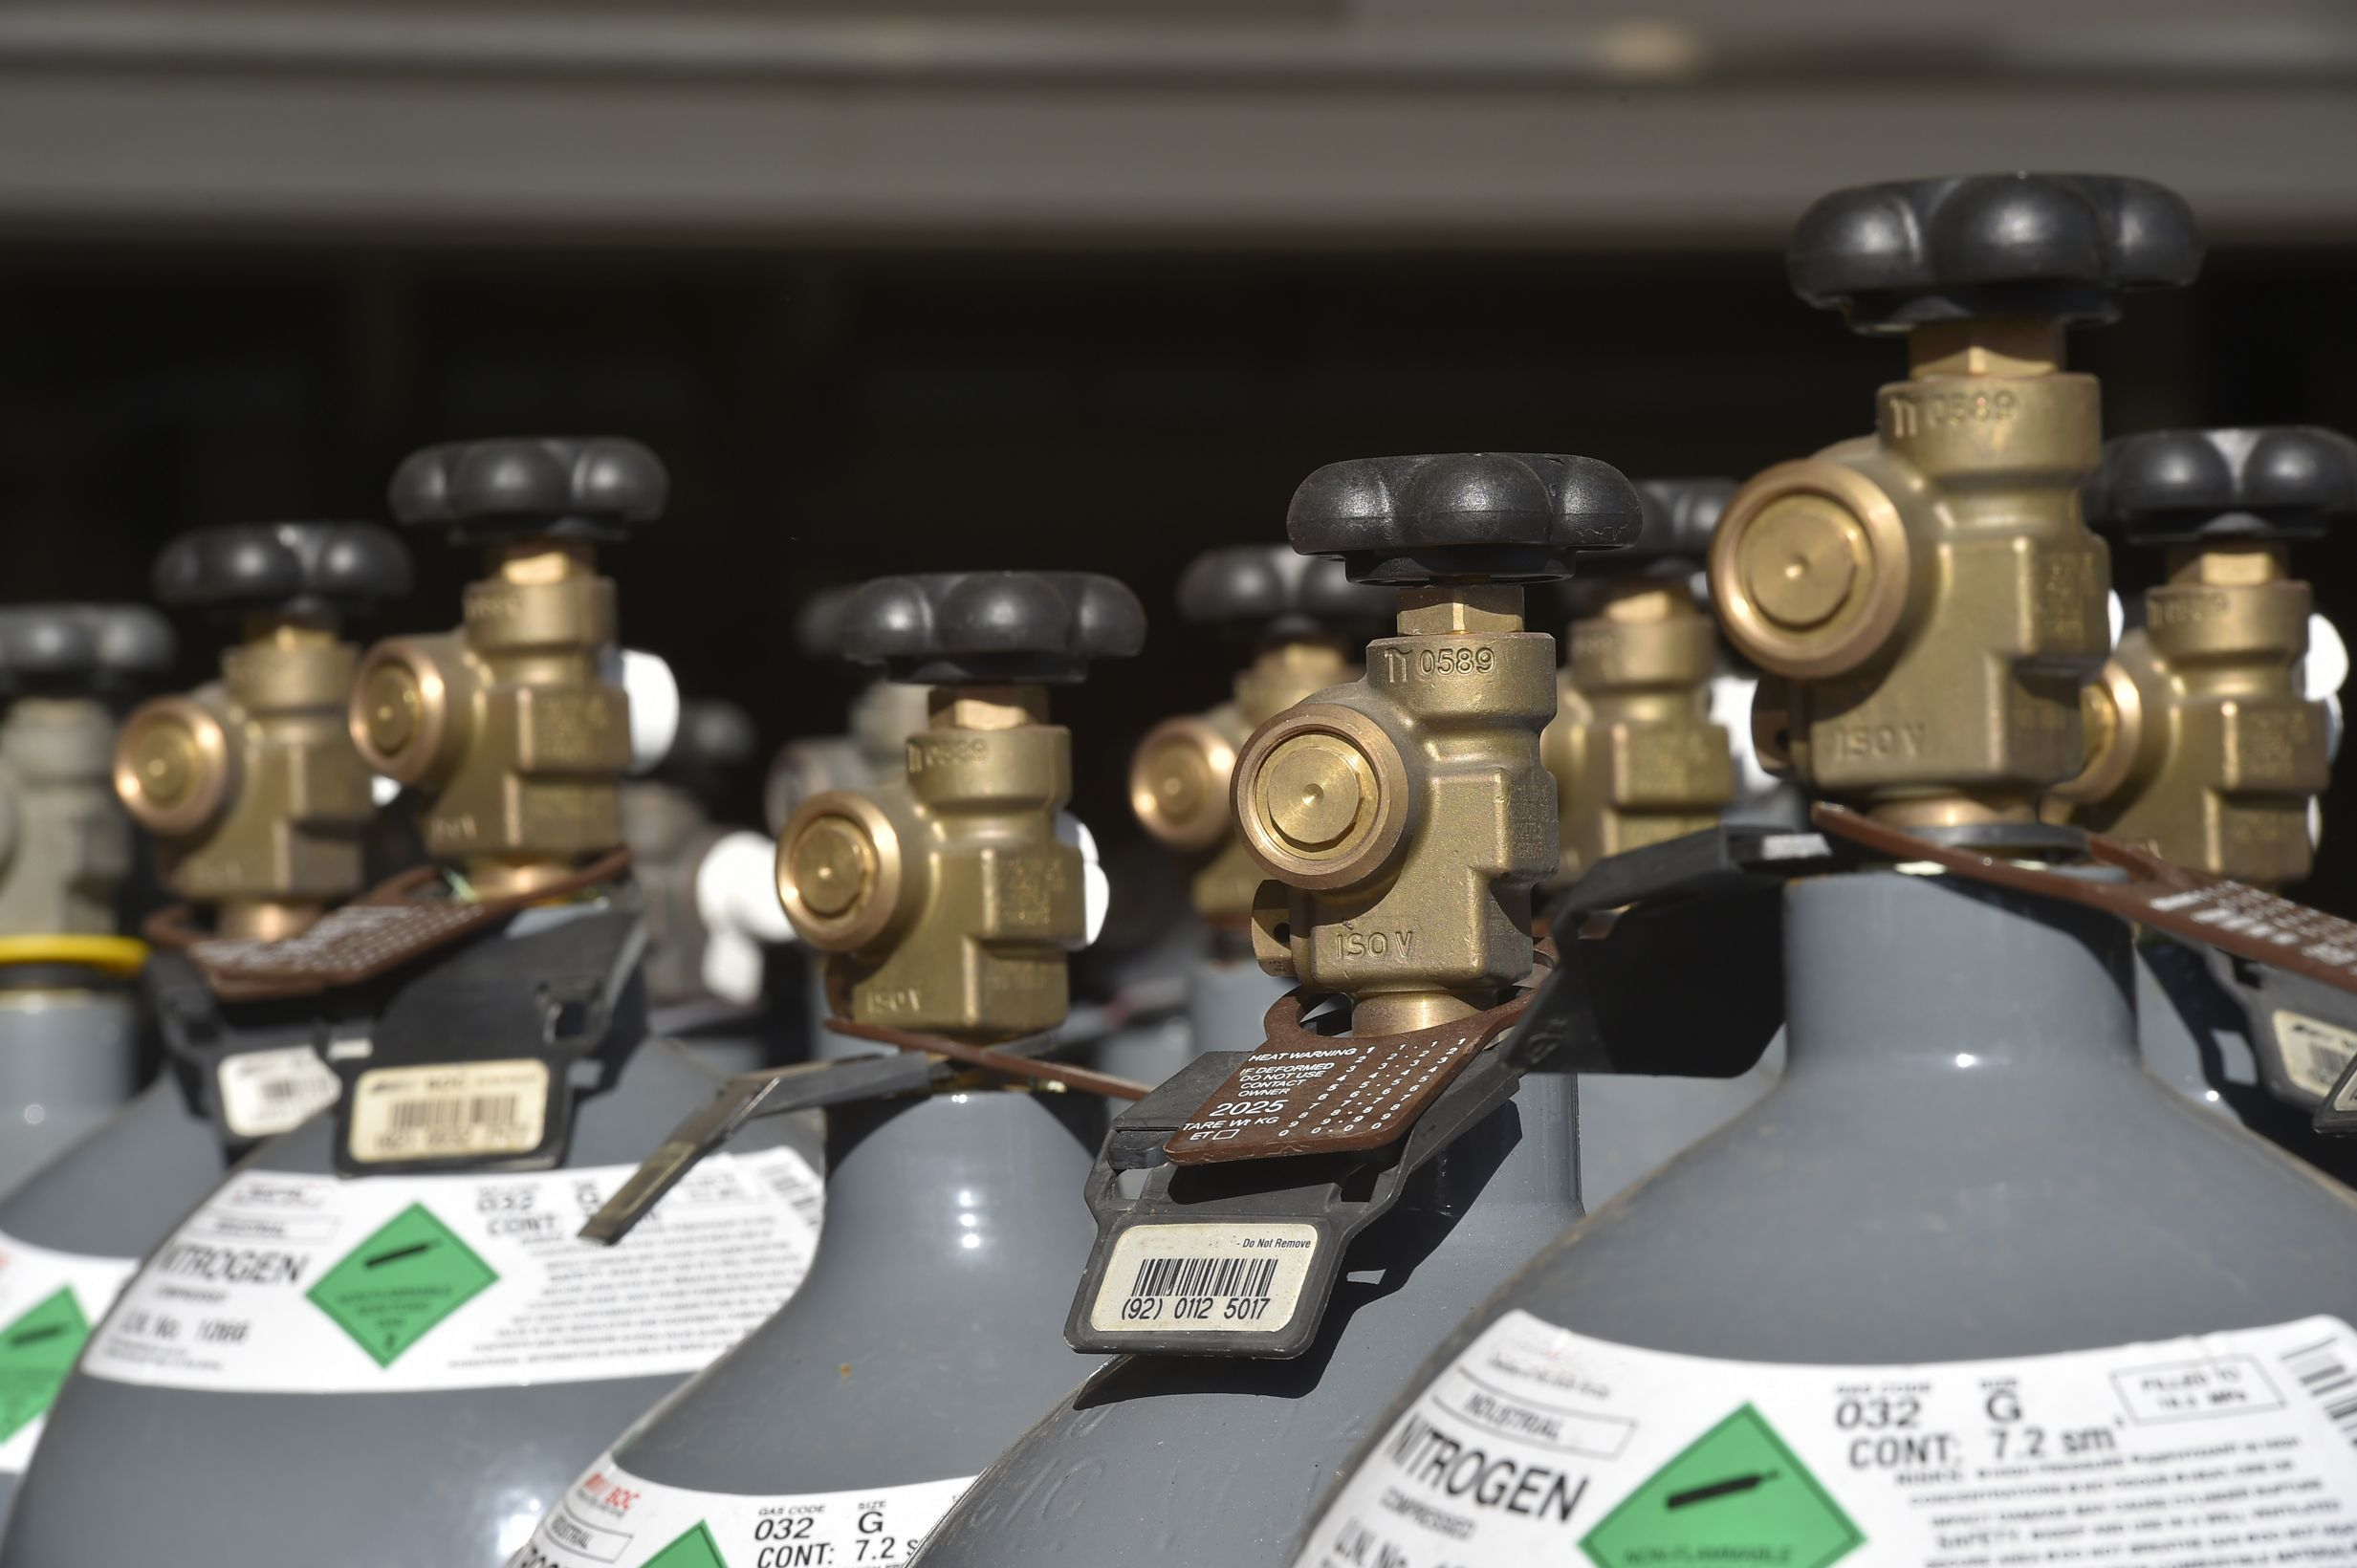 Close up and Selective focus of Industrial Nitrogen cylinders in group. Image by xshot / Shutterstock. Image ID: 386837779